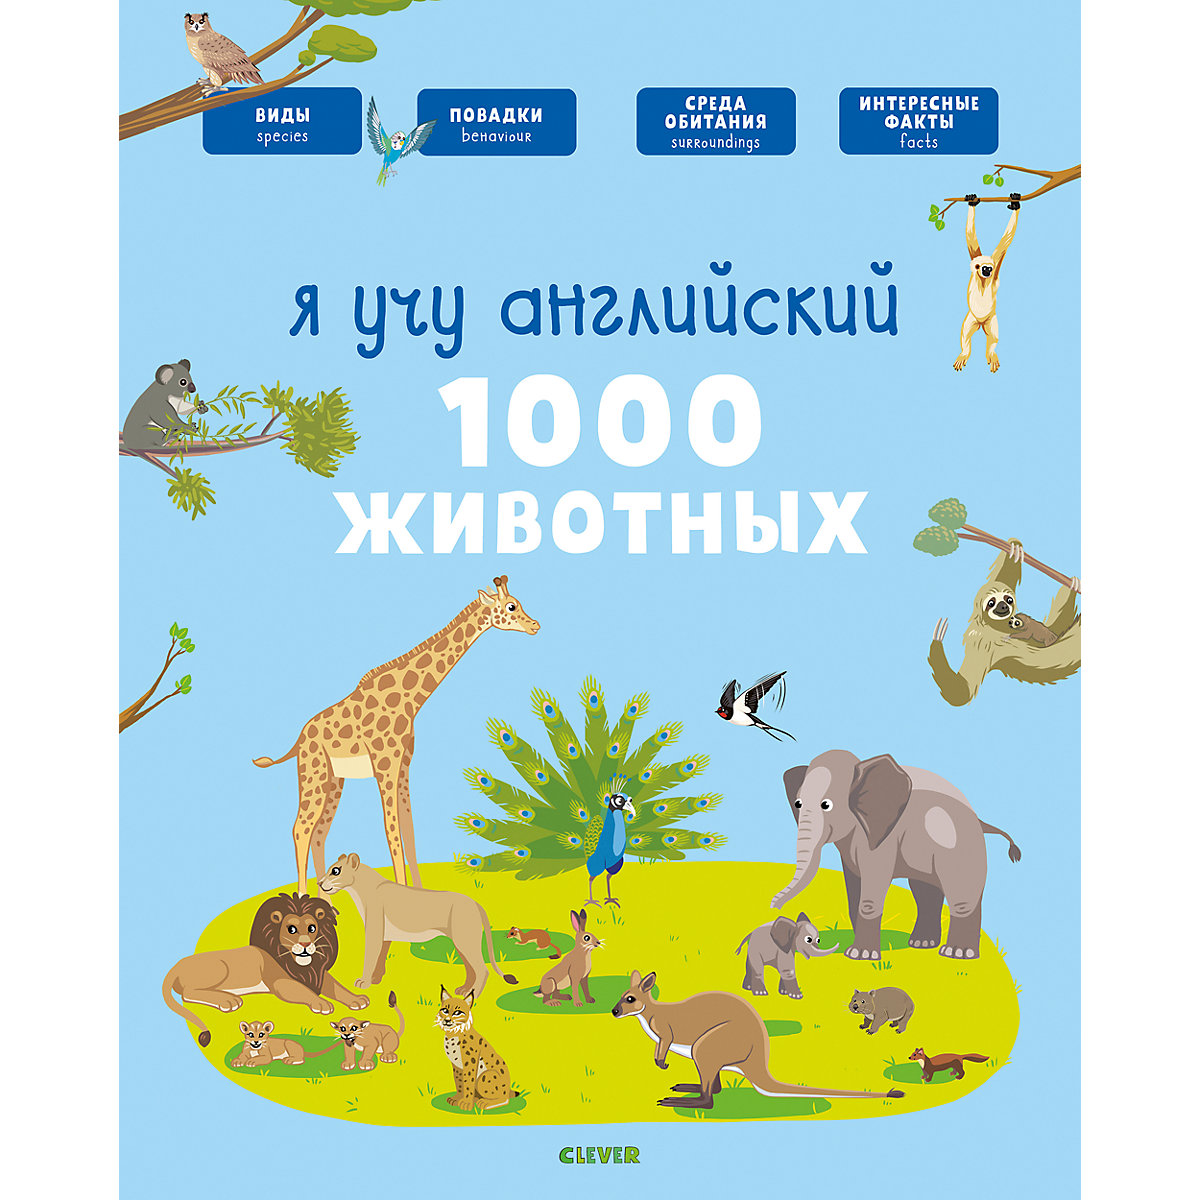 Books CLEVER 10078069 Children Education Encyclopedia Alphabet Dictionary Book For Baby